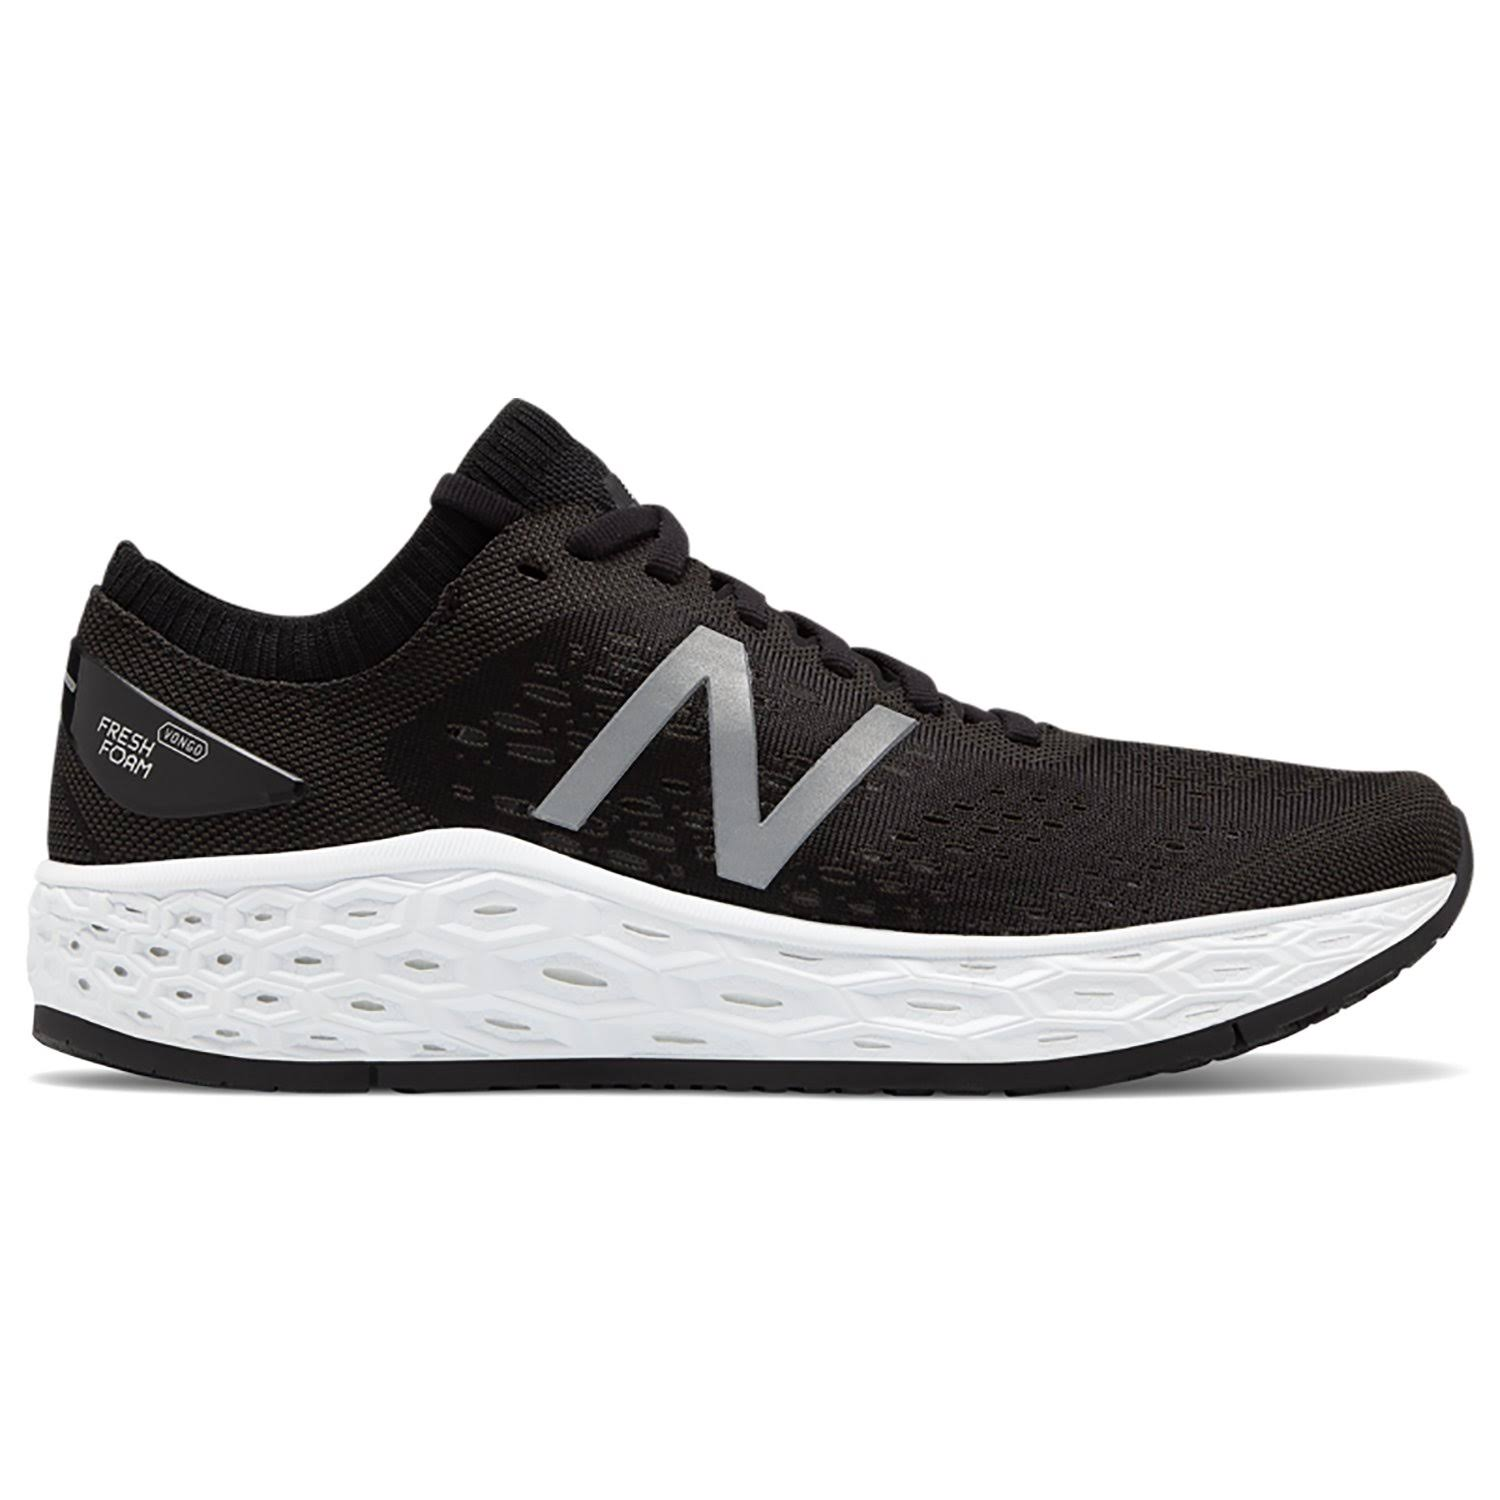 New Balance Fresh Foam Vongo v4 11 Women's Black